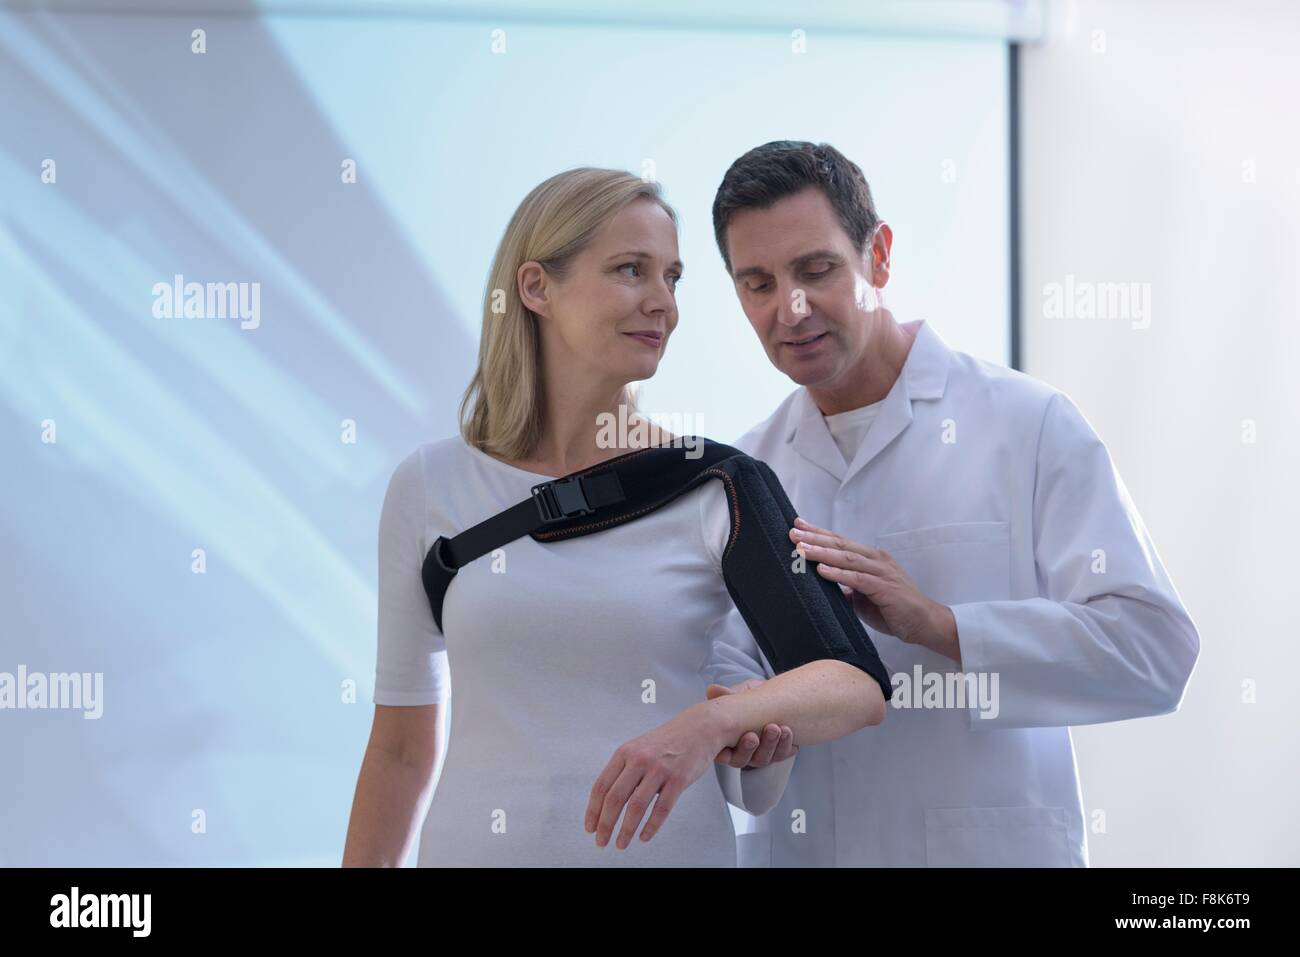 Doctor fitting orthopaedic sling to patient - Stock Image